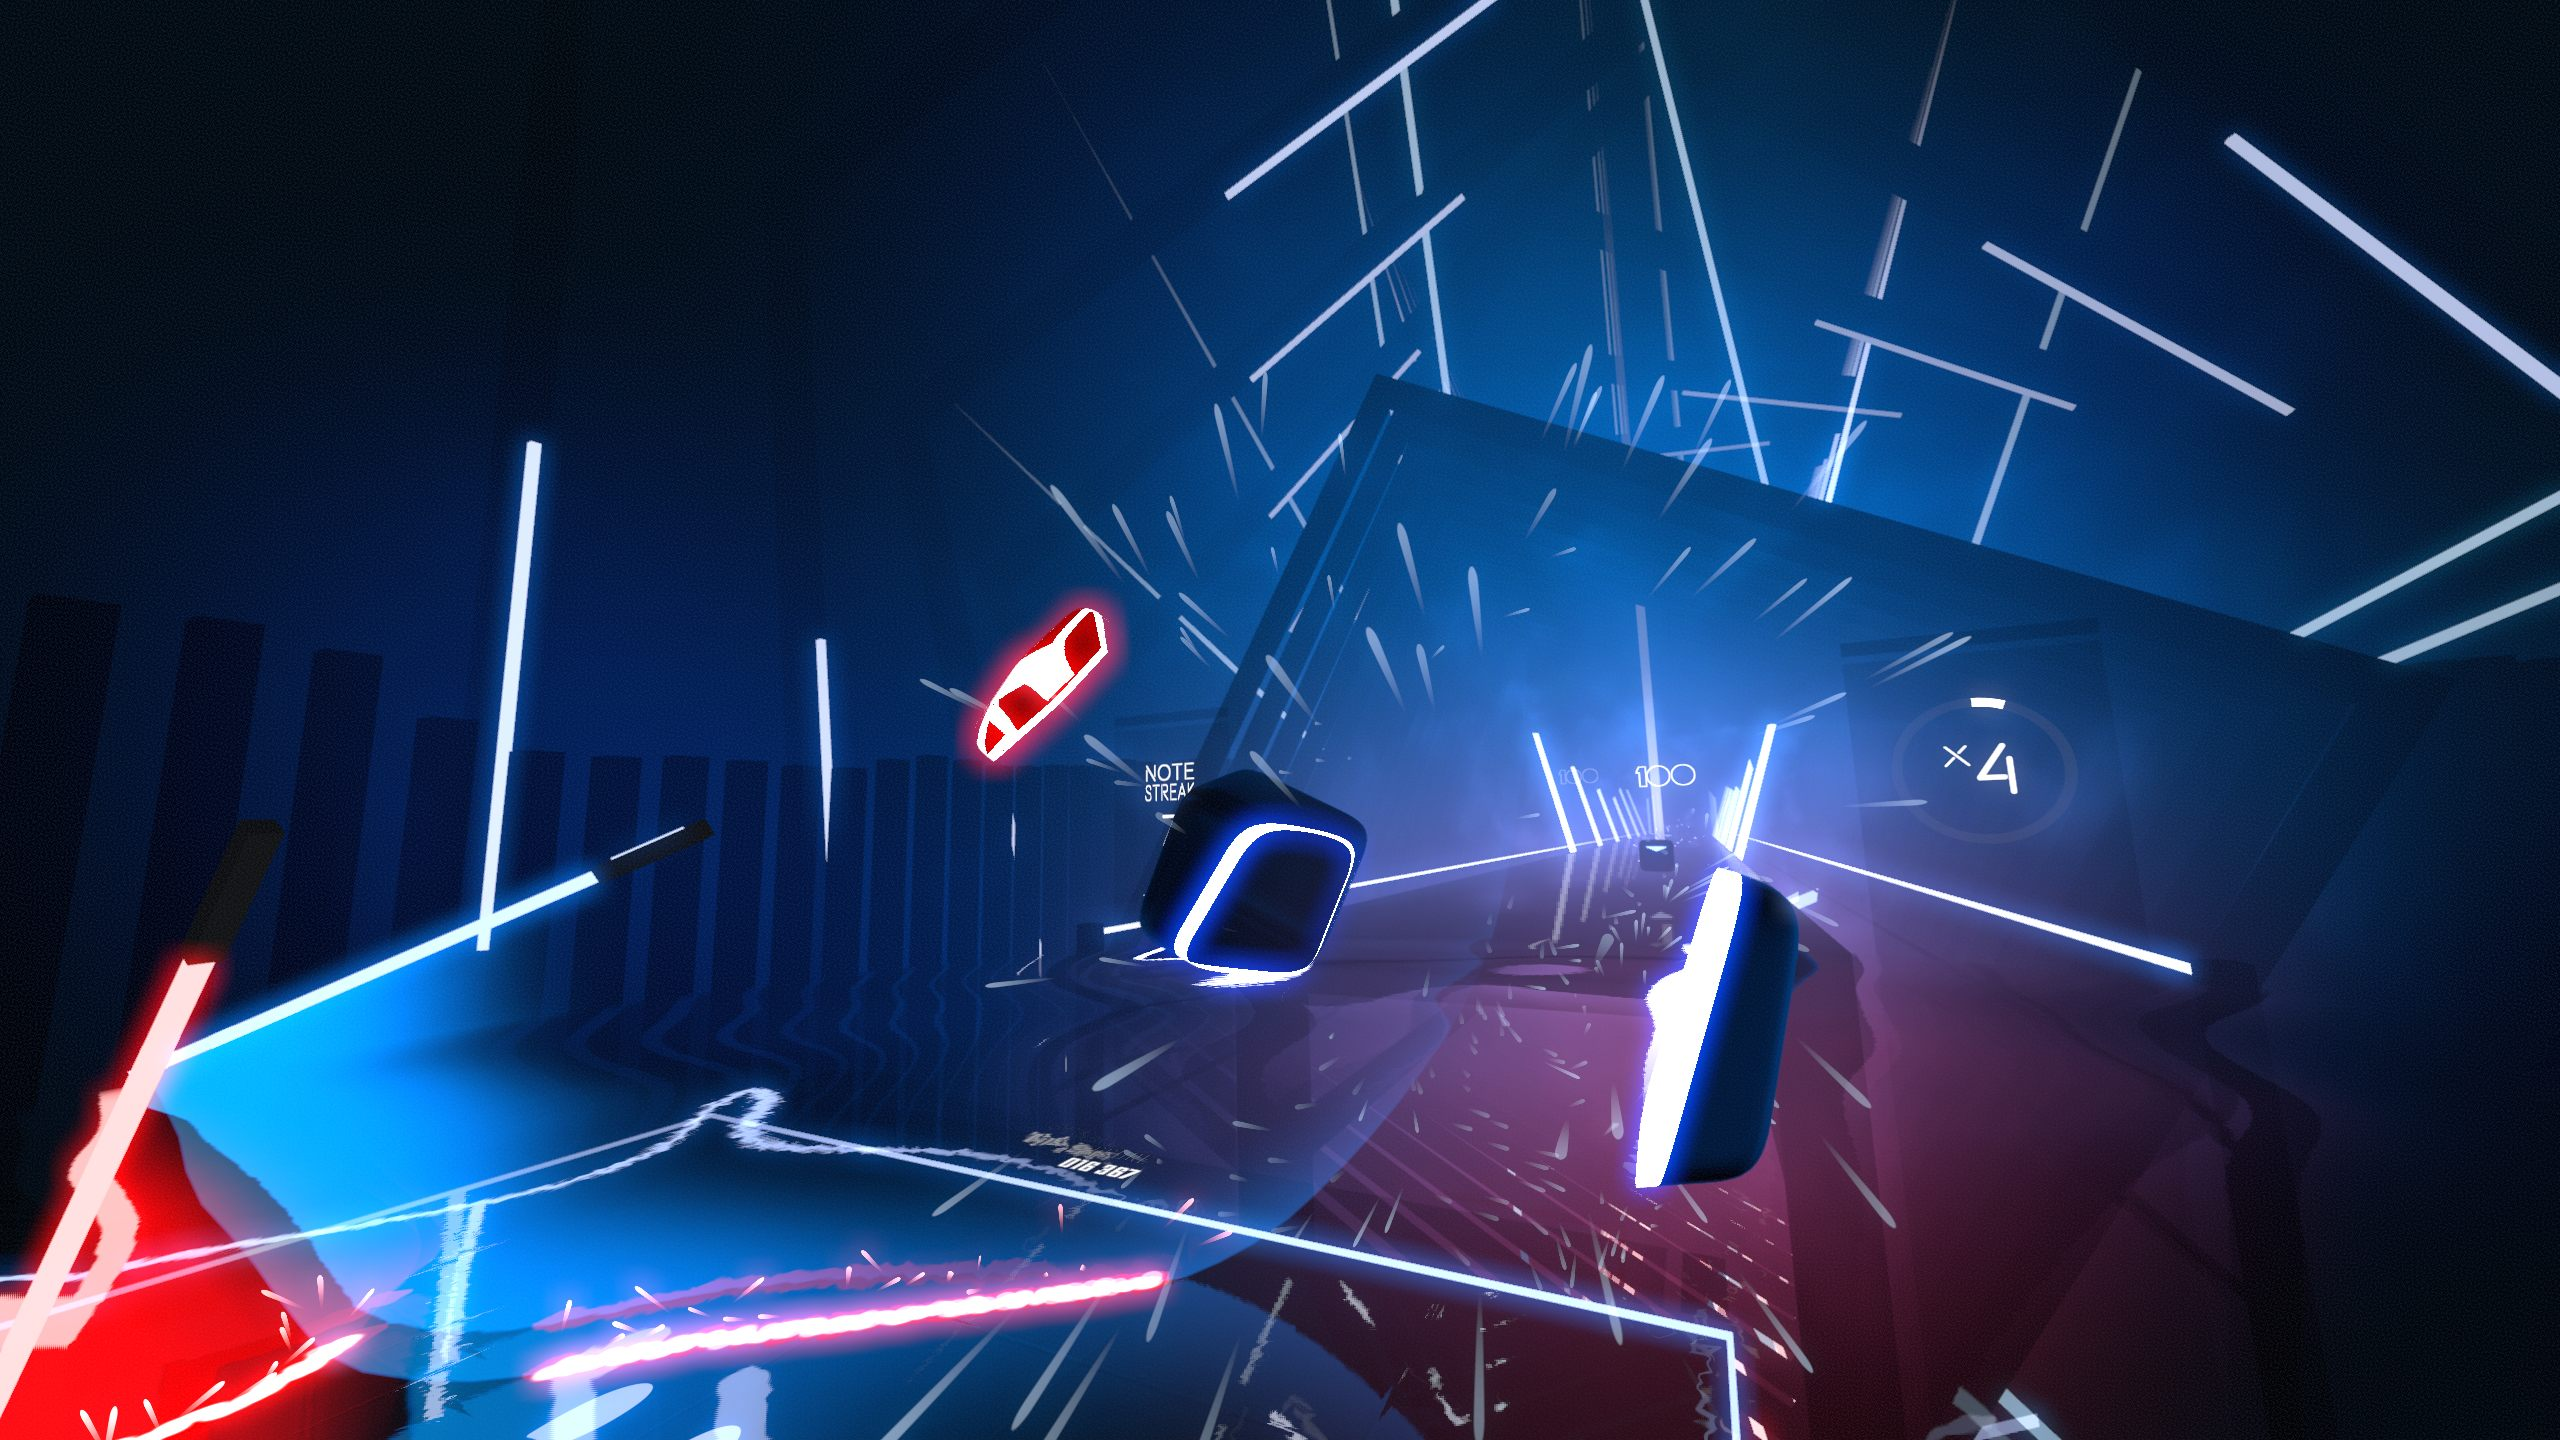 beat saber best vr game 2018 year of the games